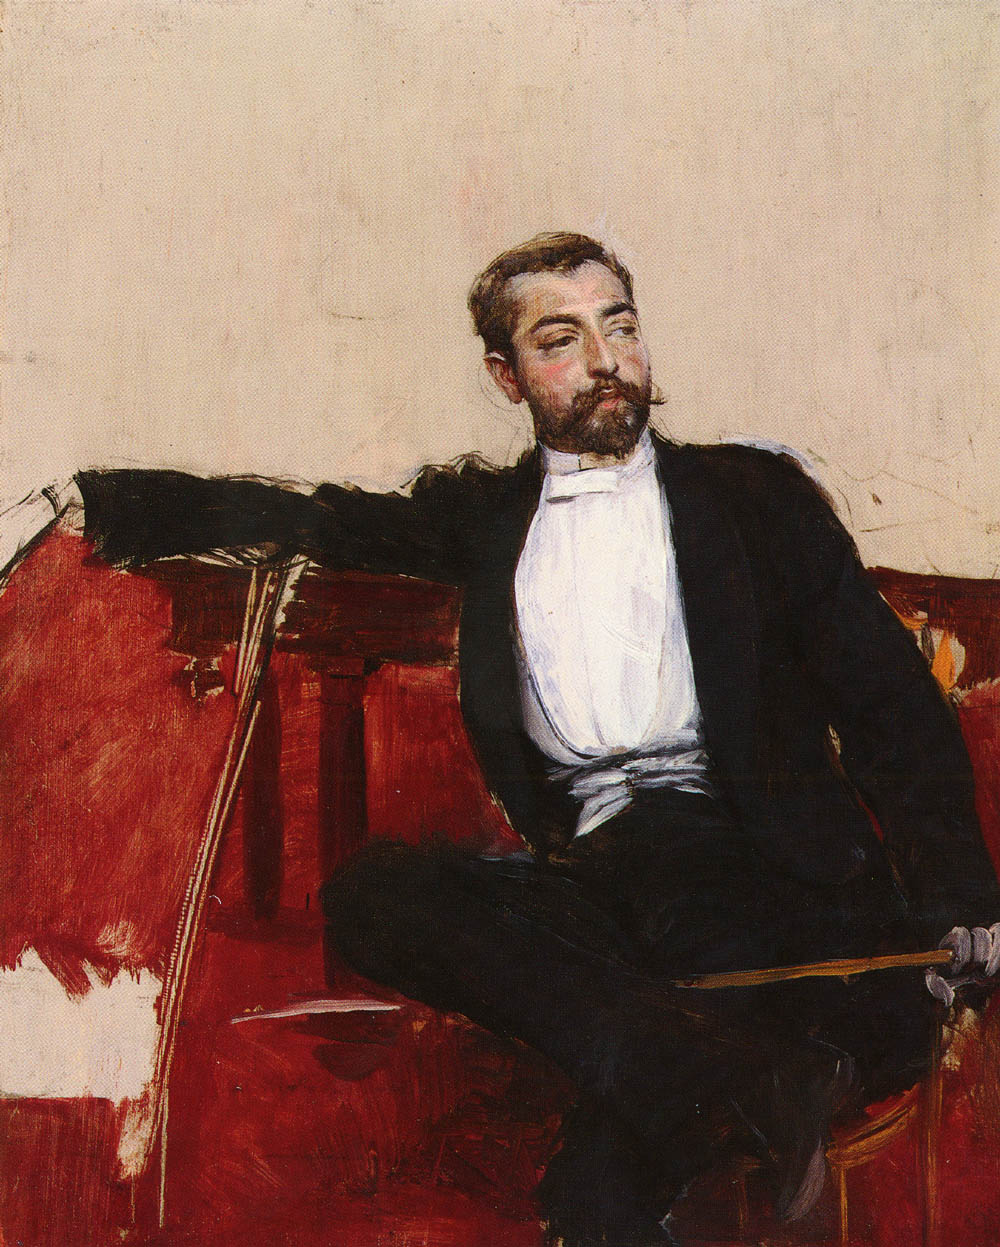 https://upload.wikimedia.org/wikipedia/commons/e/e2/Giovanni_Boldini_%281842-1931%29_-_A_Portrait_of_John_Singer_Sargent.jpg